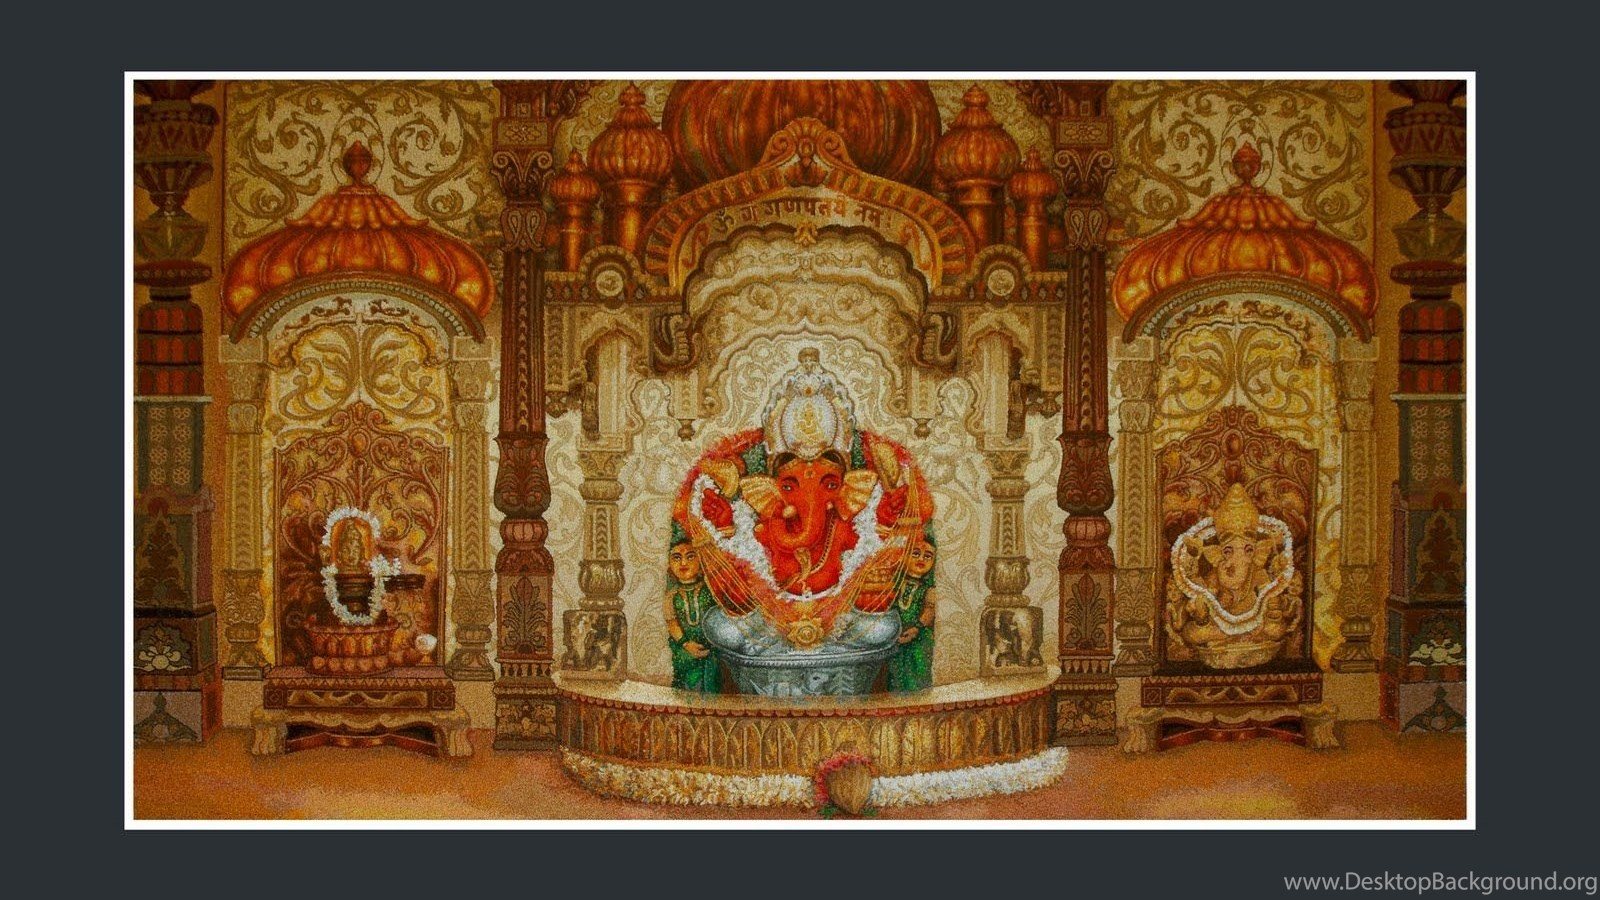 Wallpapers Siddhivinayak Ganesha 1024x768 Desktop Background Source Temple Mumbai Ganesh Chaturthi Special MumbaiRock